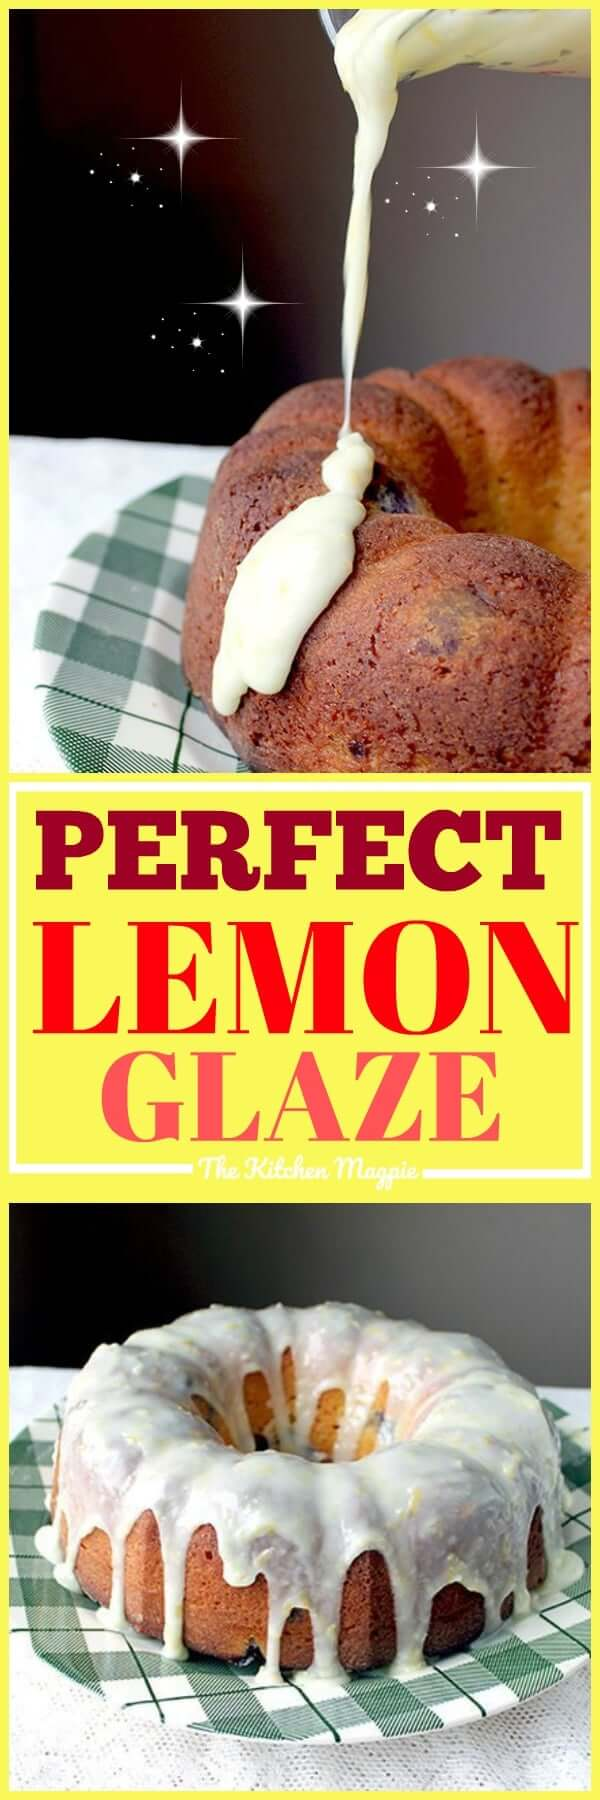 Lemon Icing Glaze is very easy to make and consists of four simple ingredients. Read to find out how to make this great, simple lemon glaze that will be amazing on your cakes, cupcakes and more!#dessert #lemon #icing #frosting #recipe #glaze